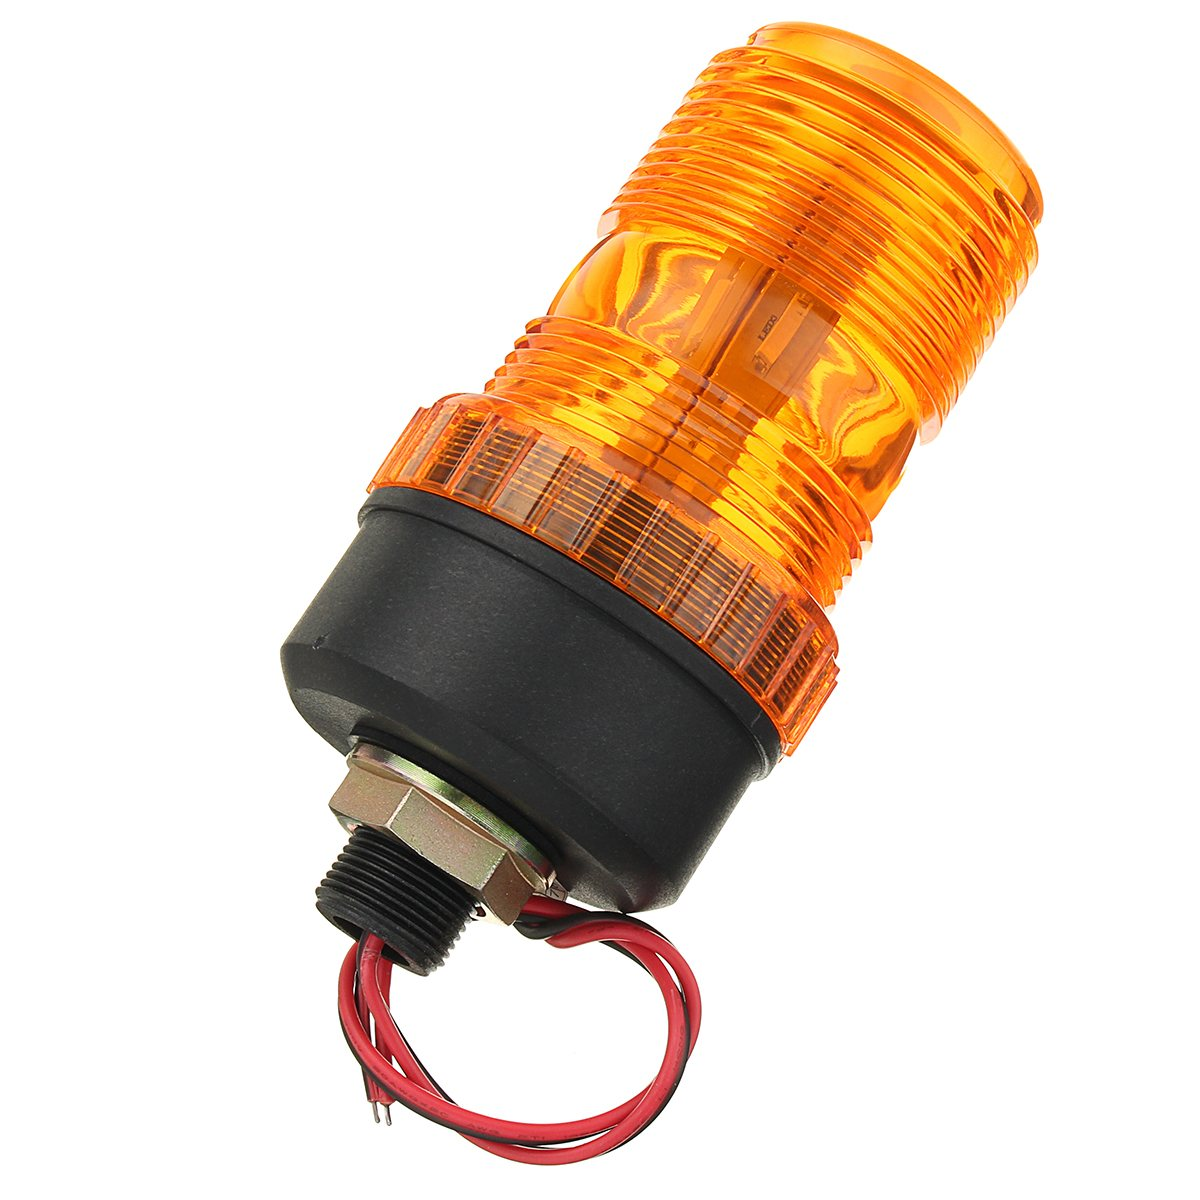 NEW Safurance LED Rotating Flashing Amber Beacon Flexible Strobe Tractor Warning Light 12v 24v Traffic Light Roadway Safety safurance led rotating flashing amber beacon flexible tractor warning light 12v 24v roadway safety